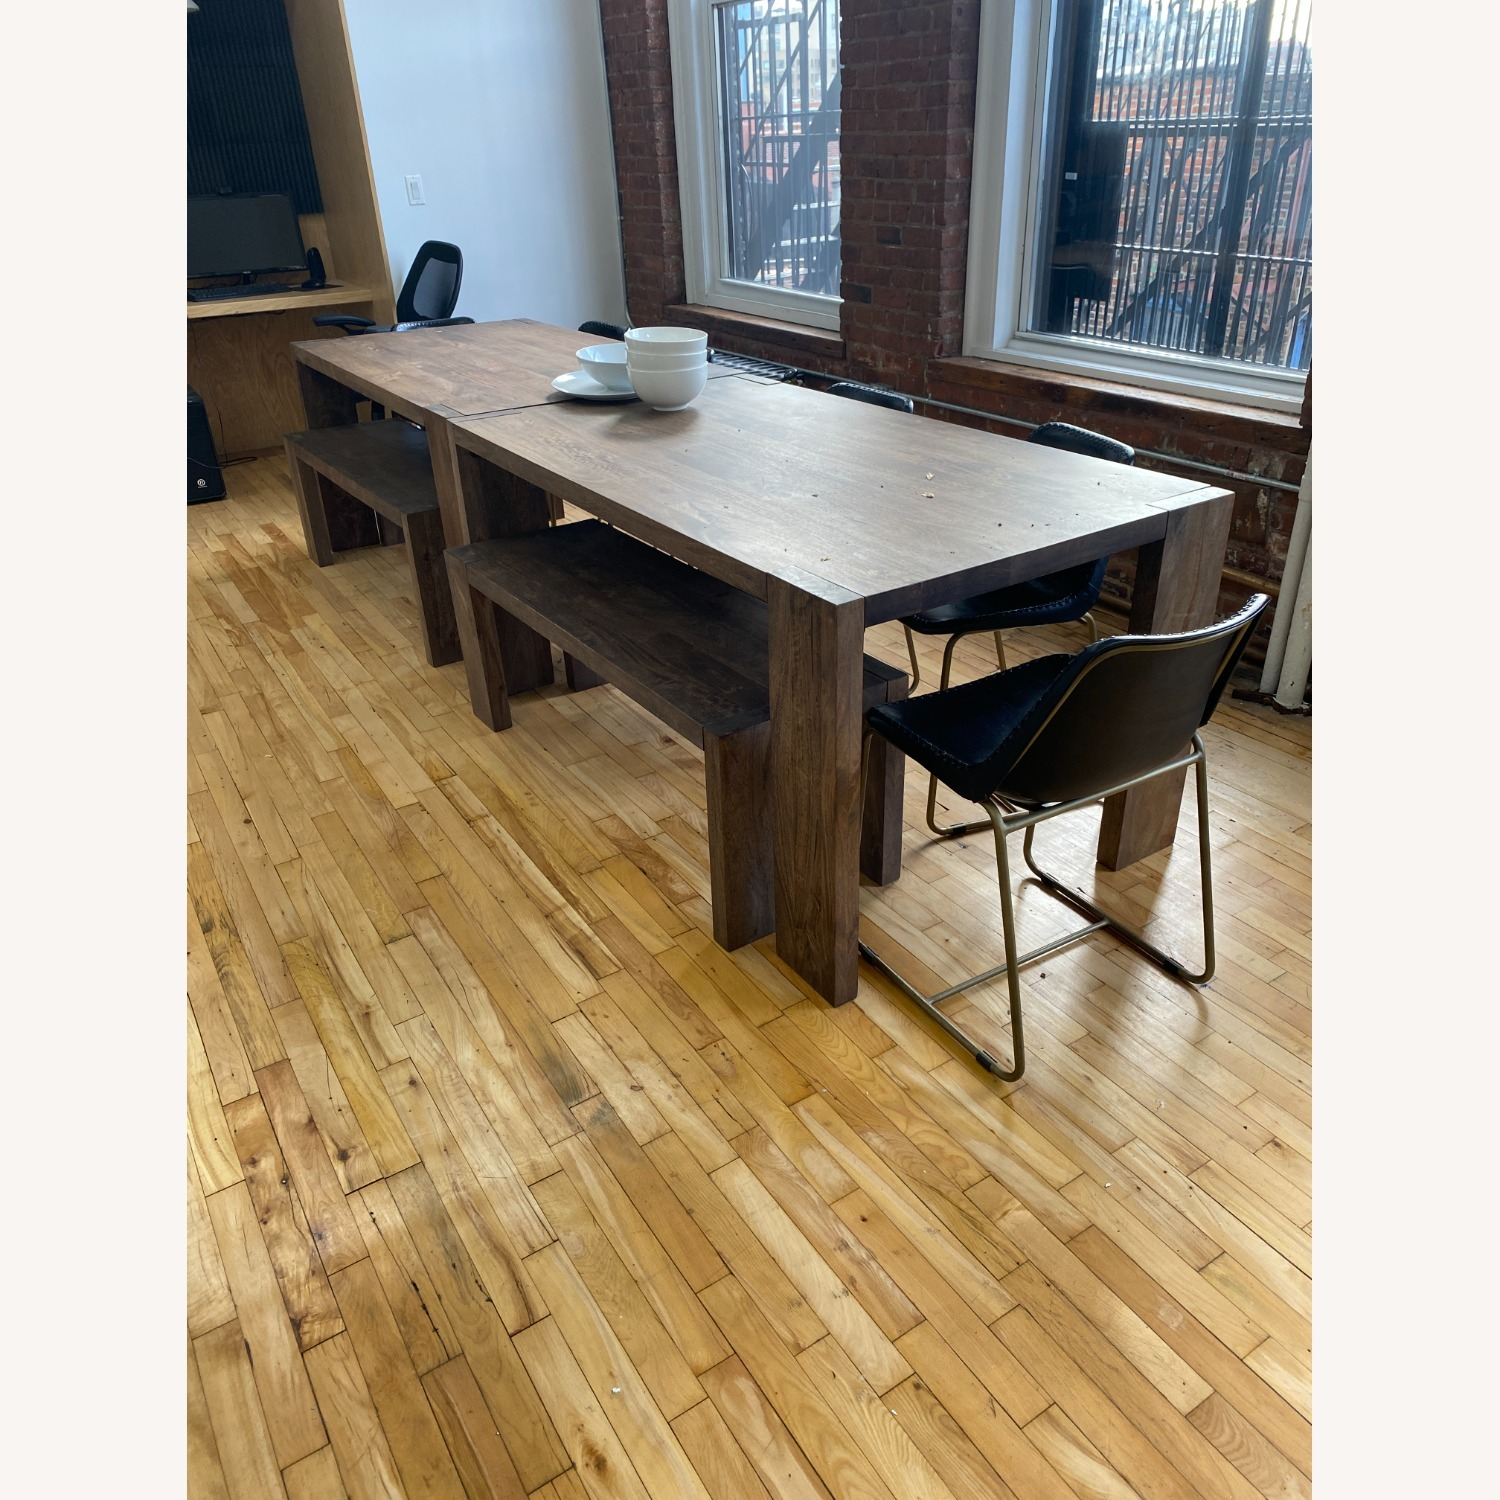 CB2 Solid Wood Blox Dining Table & Bench Set - image-5